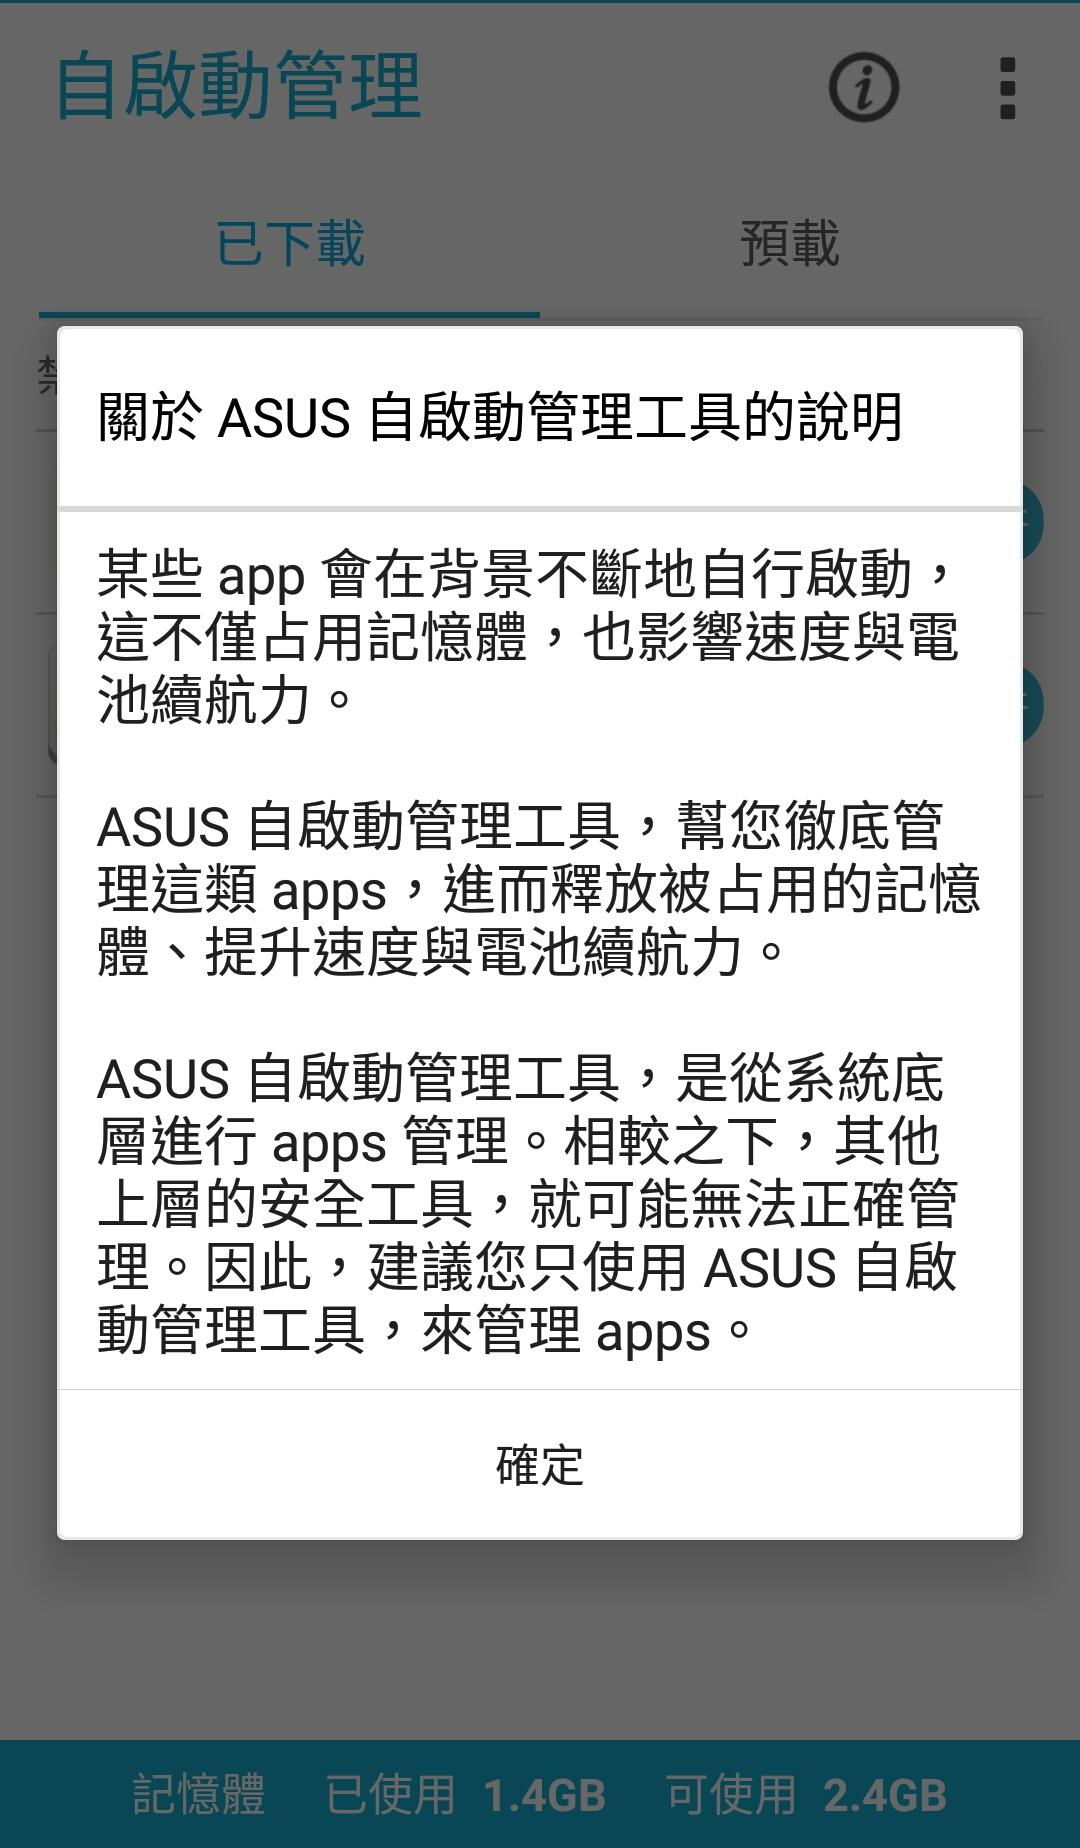 [開箱] 一機難求Zenfone2 ZE551ML 4GB-32GB入手開箱 - XFastest - 001.jpg